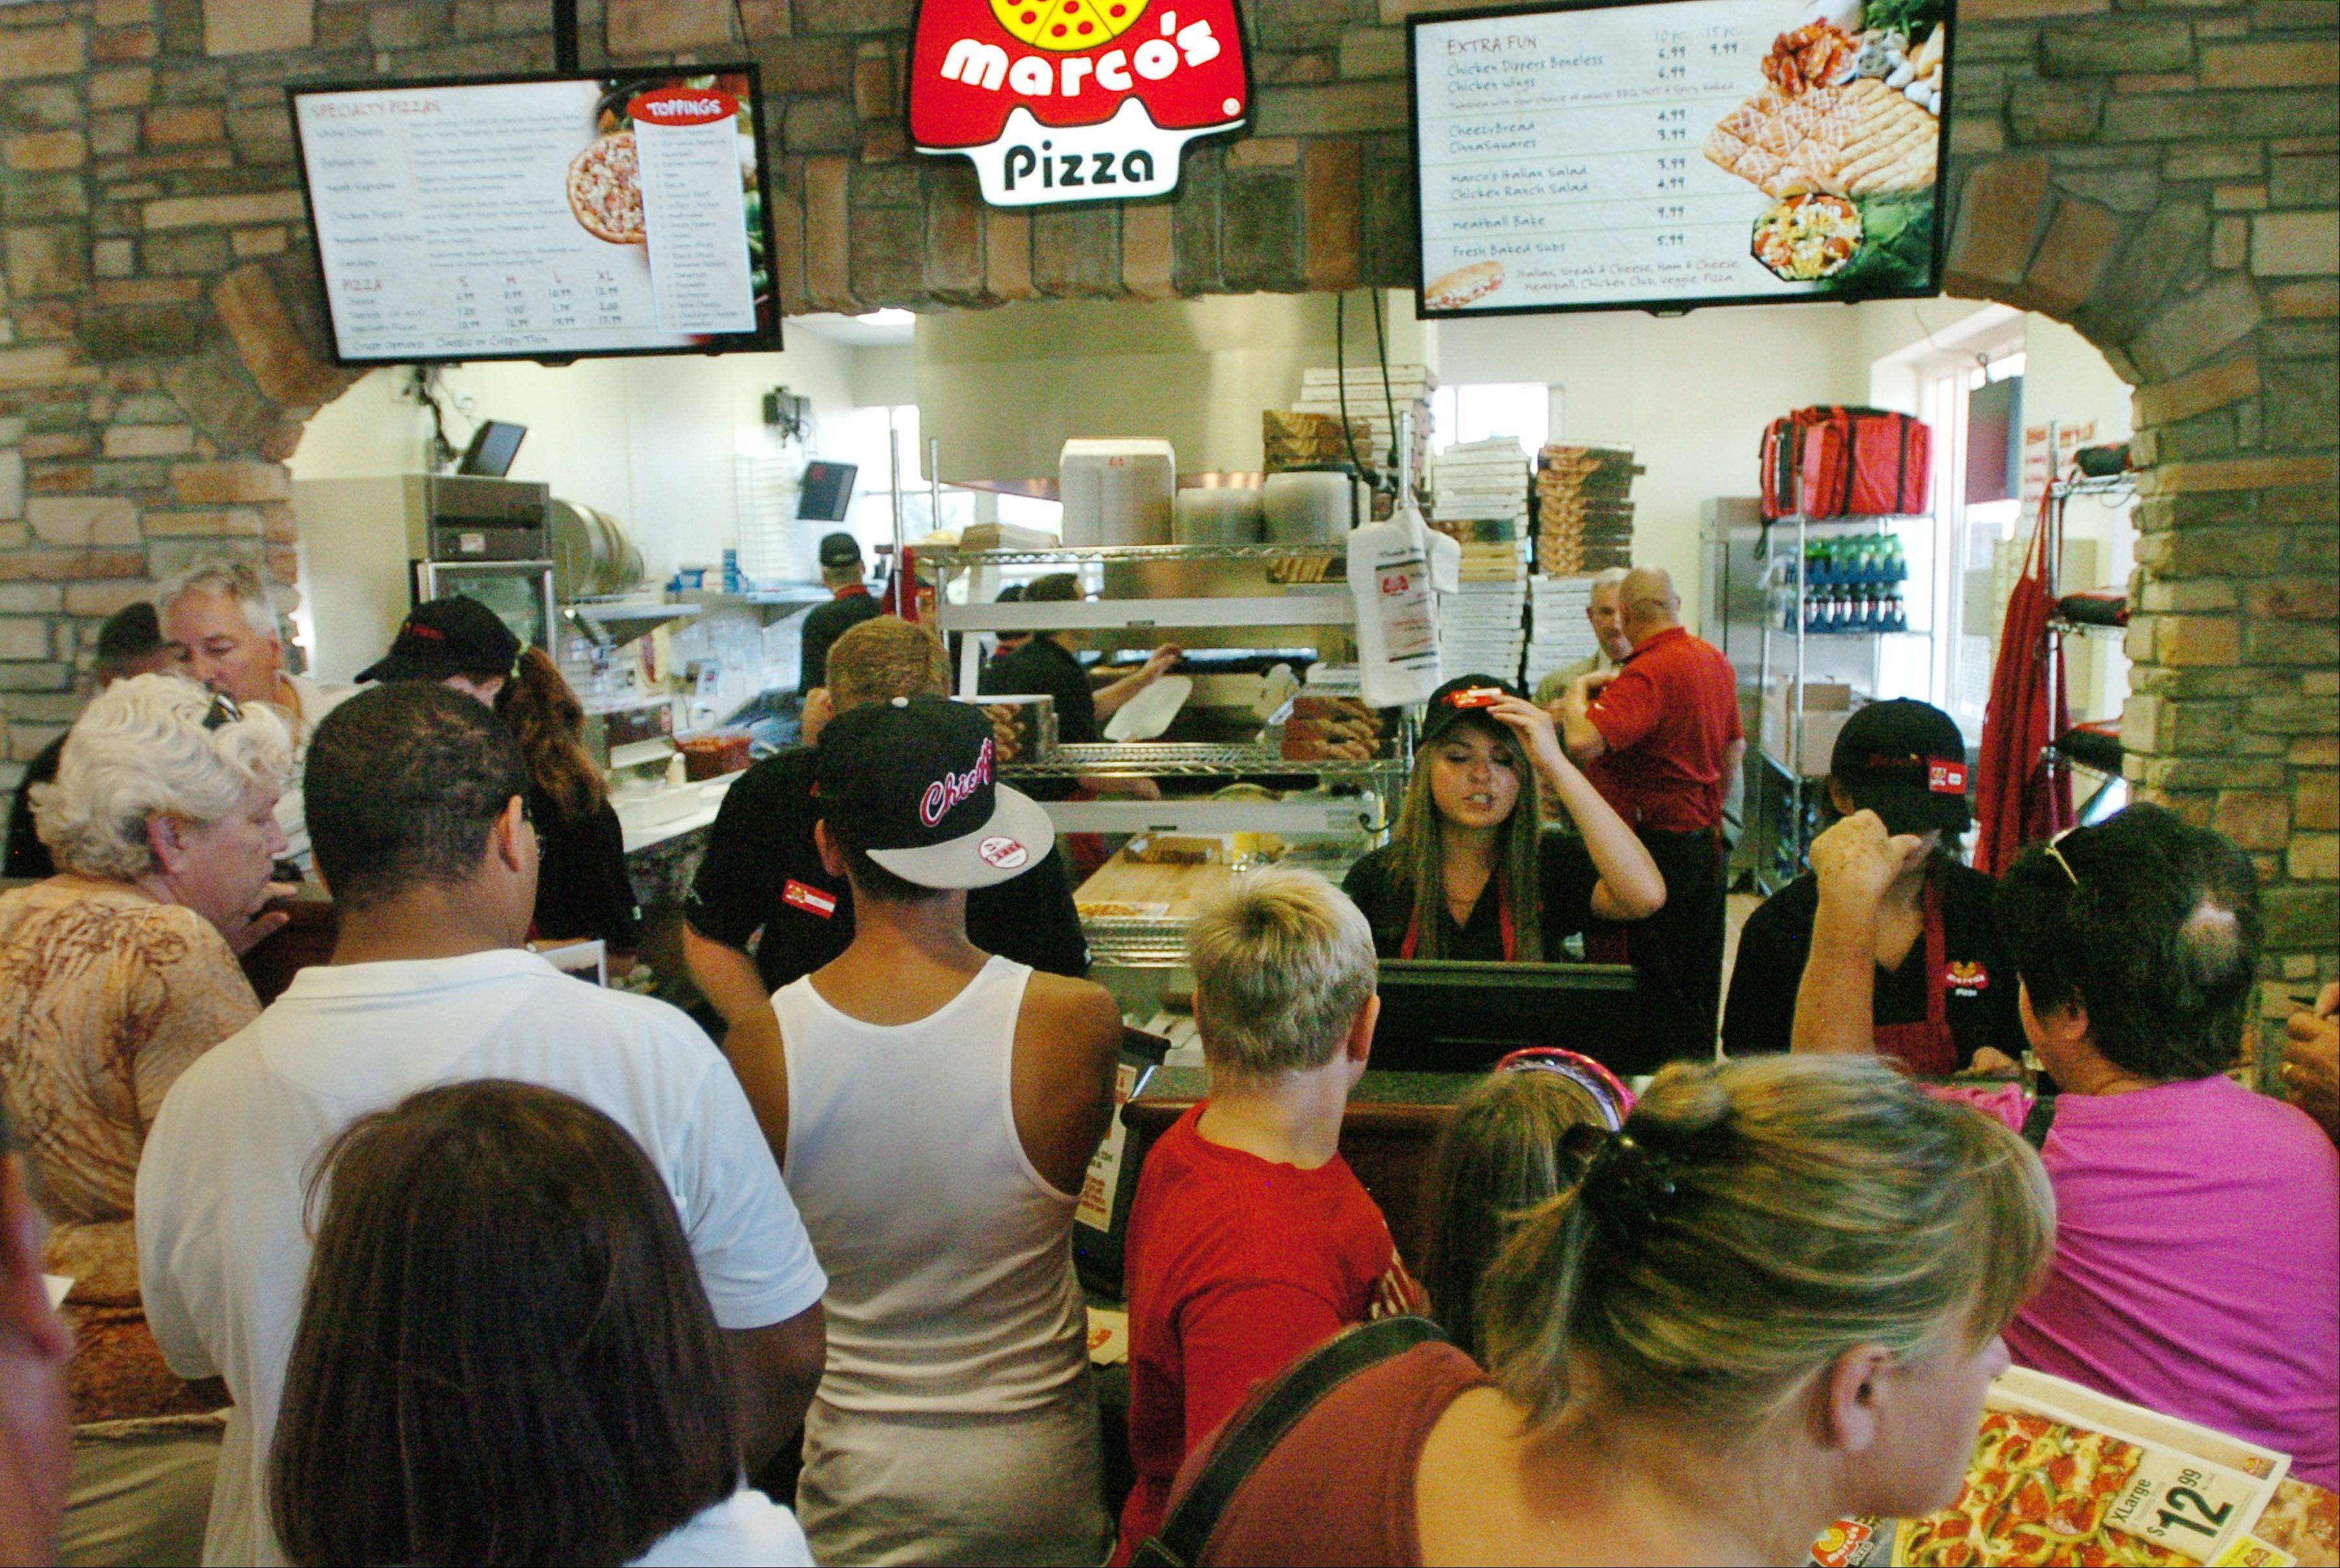 People line up for a chance at free pizza for a year at the new Marco's Pizza in Wheeling.